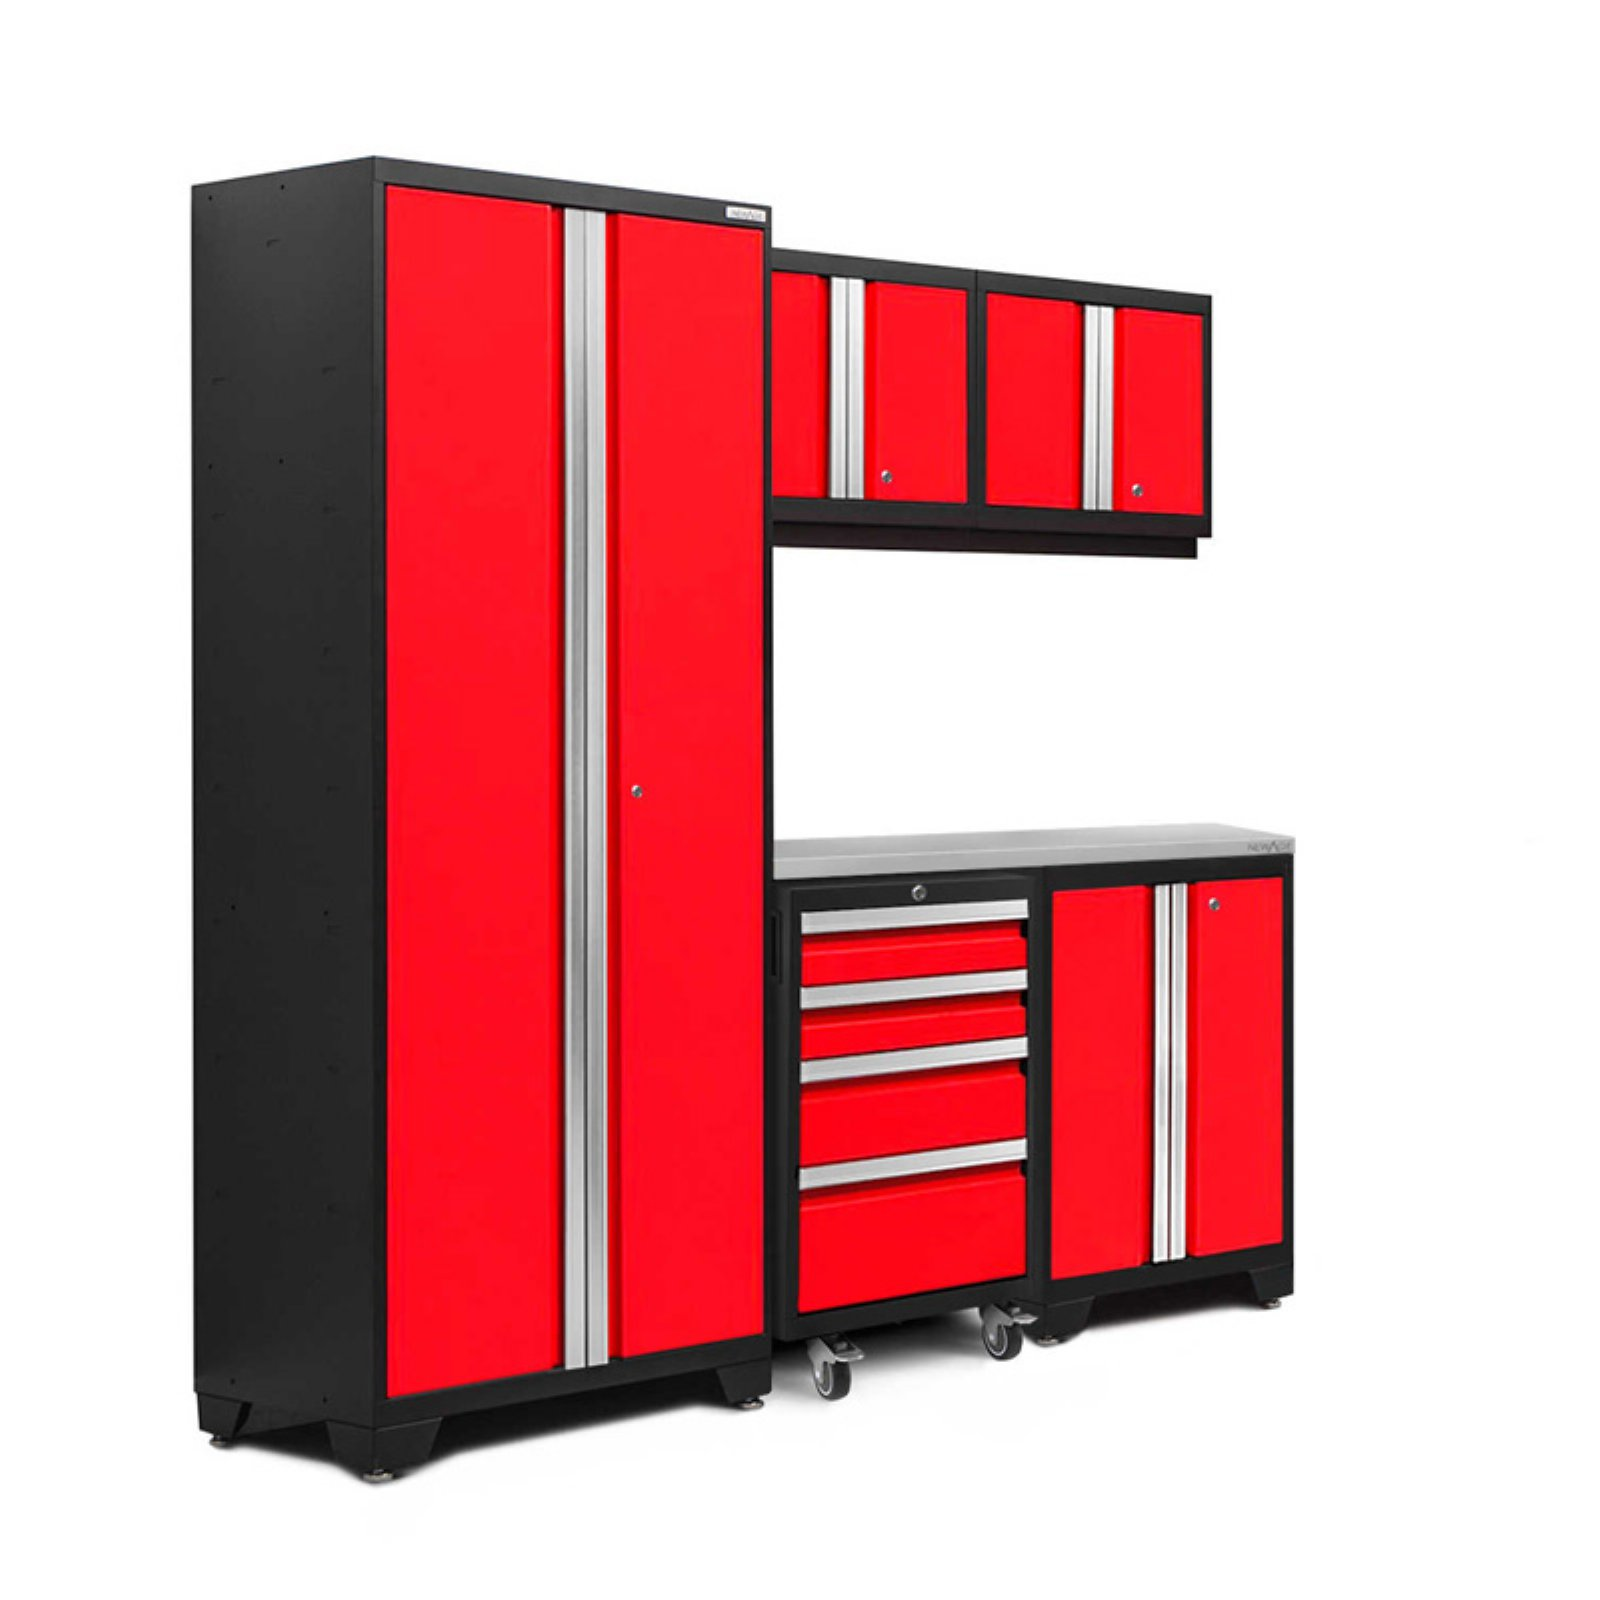 NewAge Products Bold 3.0 6 Piece Garage Cabinet System